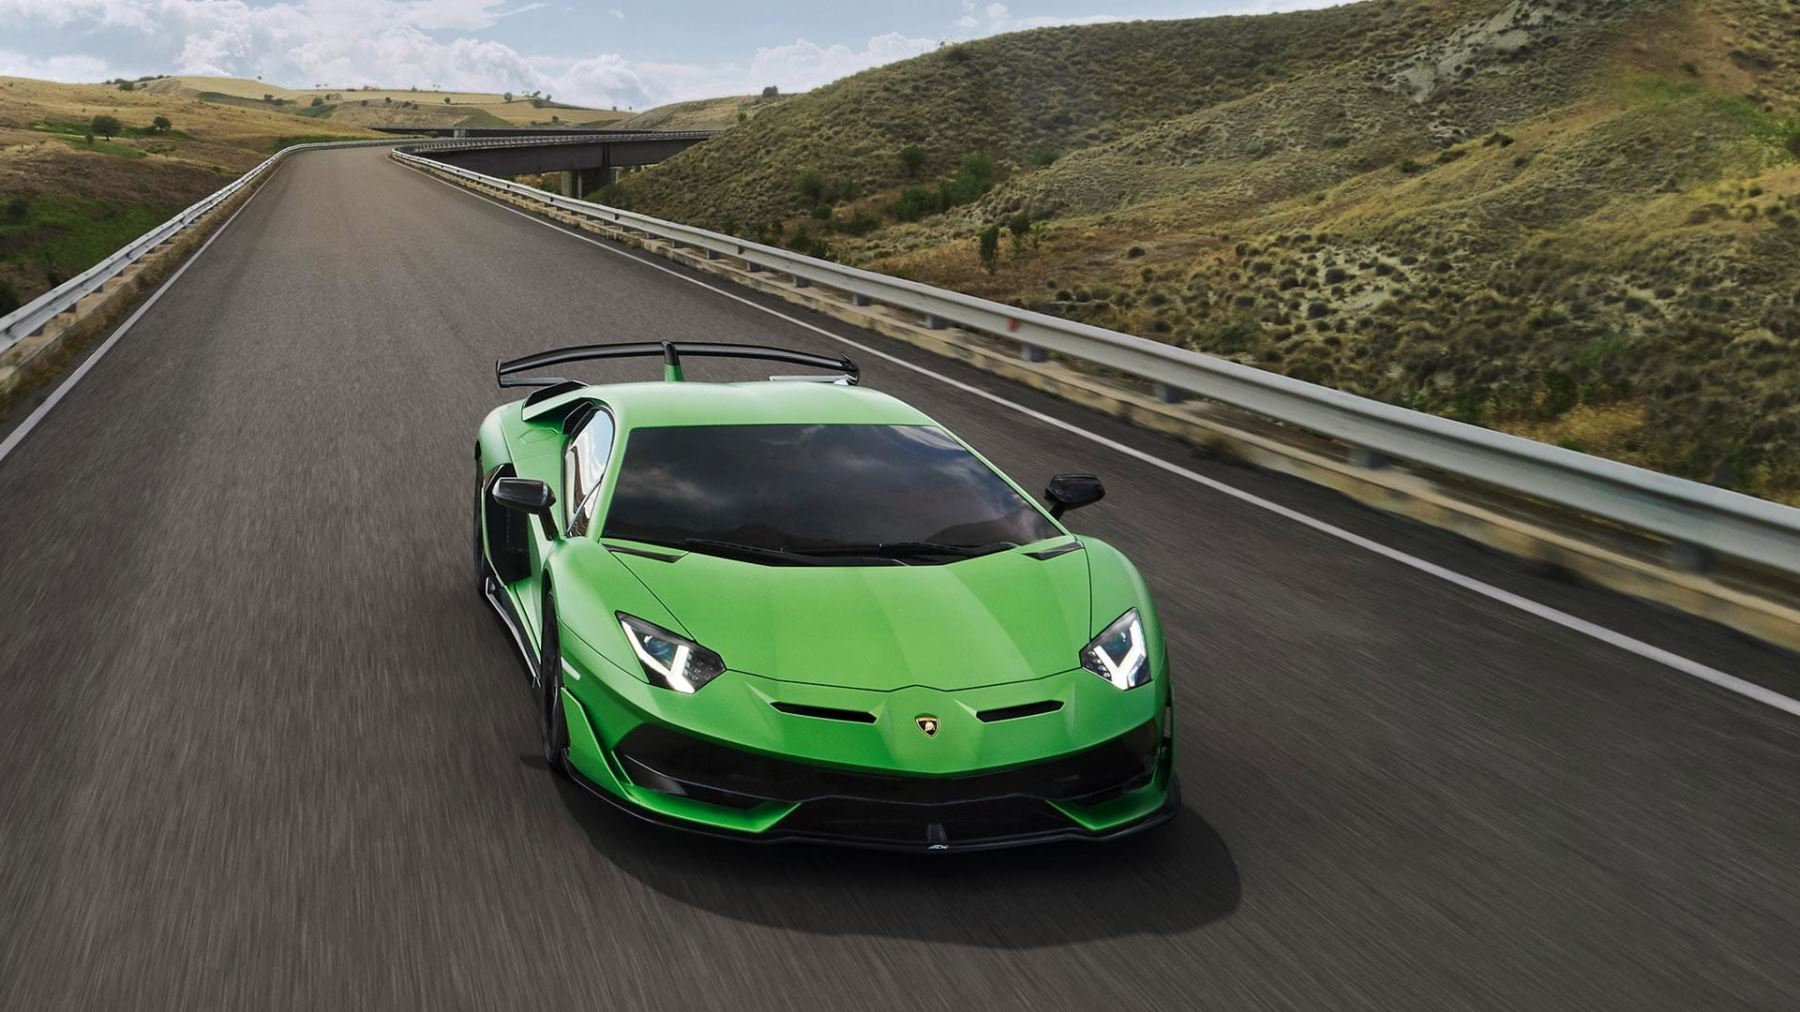 Lamborghini Aventador SVJ Coupe - Real Emotions Shape The Future image 5